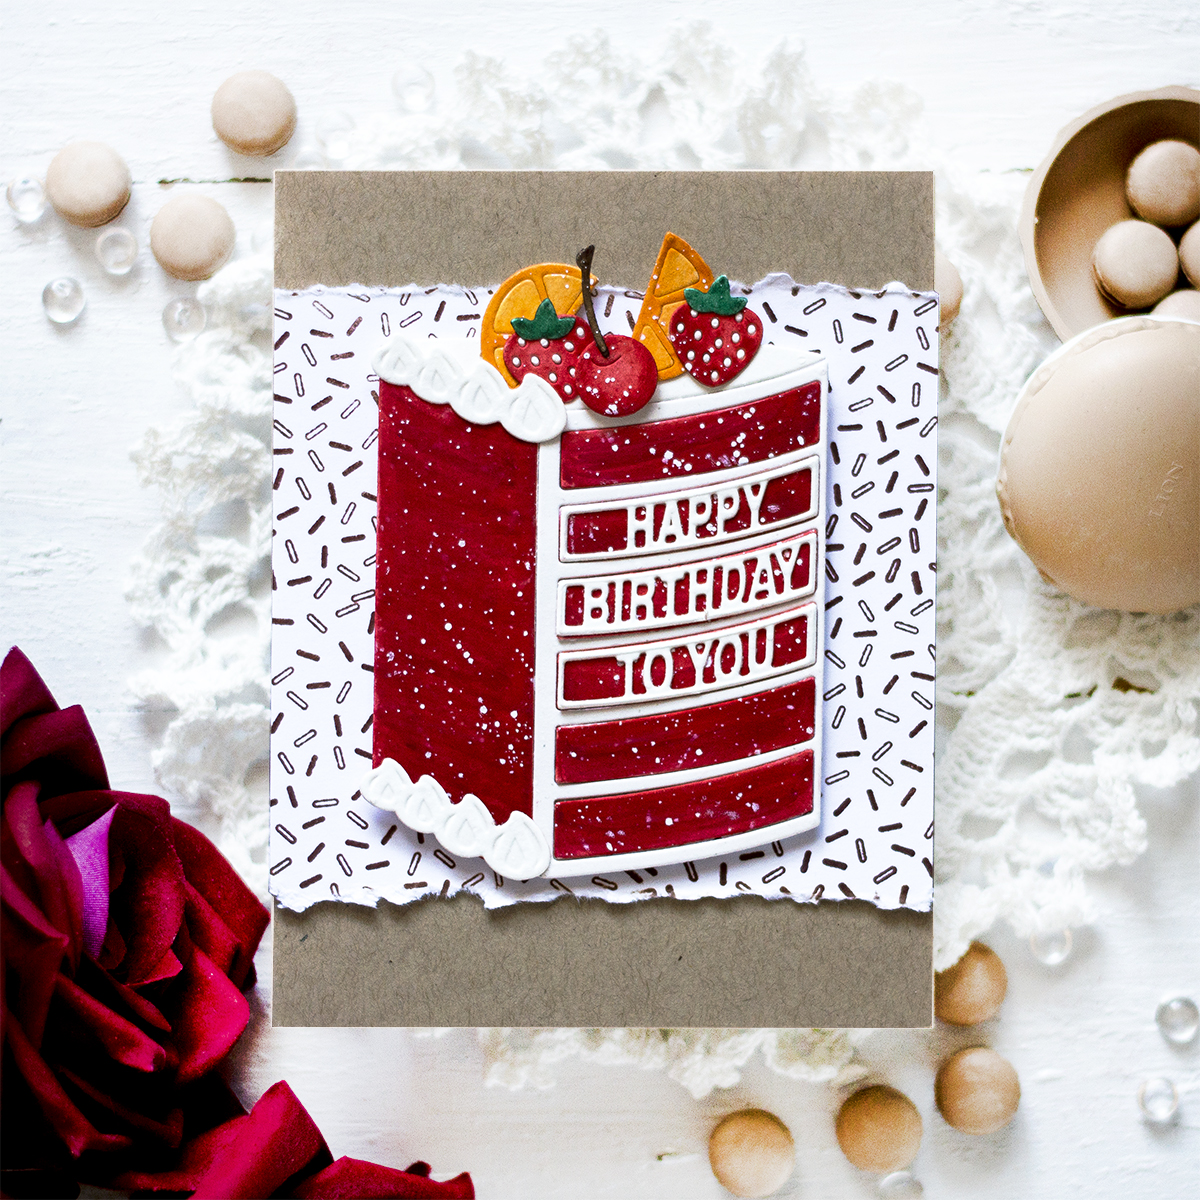 Die Cut Watercolor Cake. Card by Svitlana Shayevich